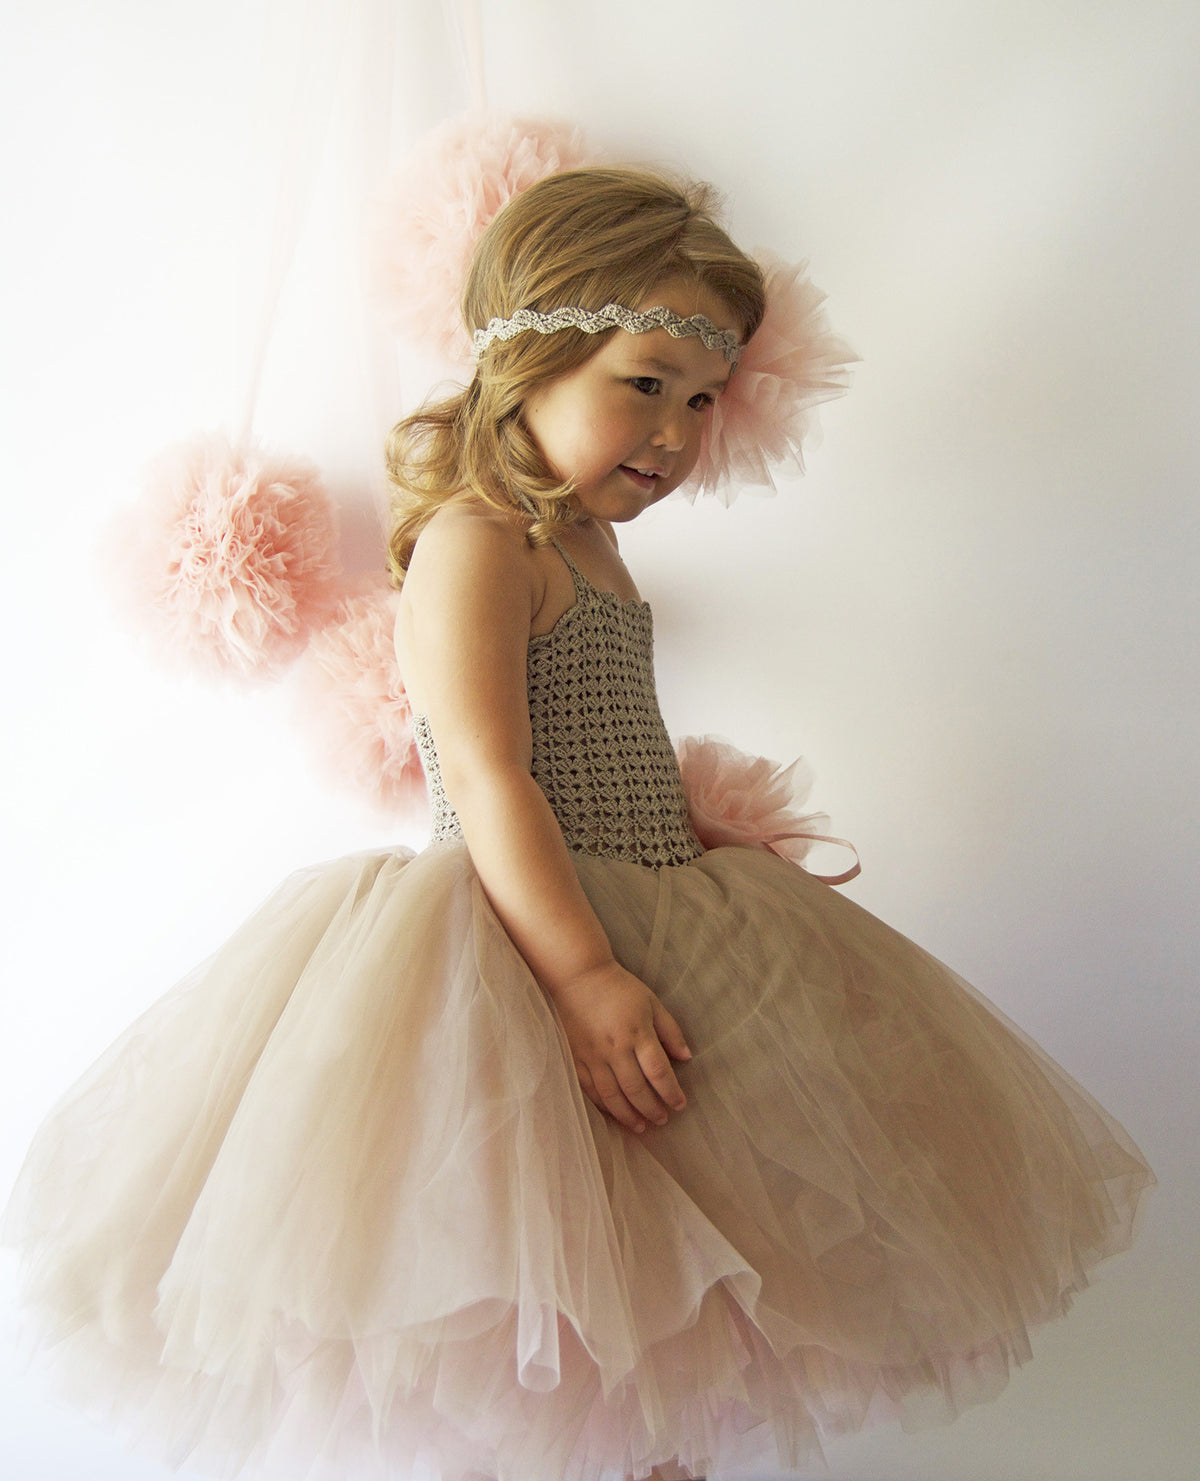 Double Layered Puffy Tutu Dress with Stretch Crochet Bustier - Taupe and Pale Blush Pink